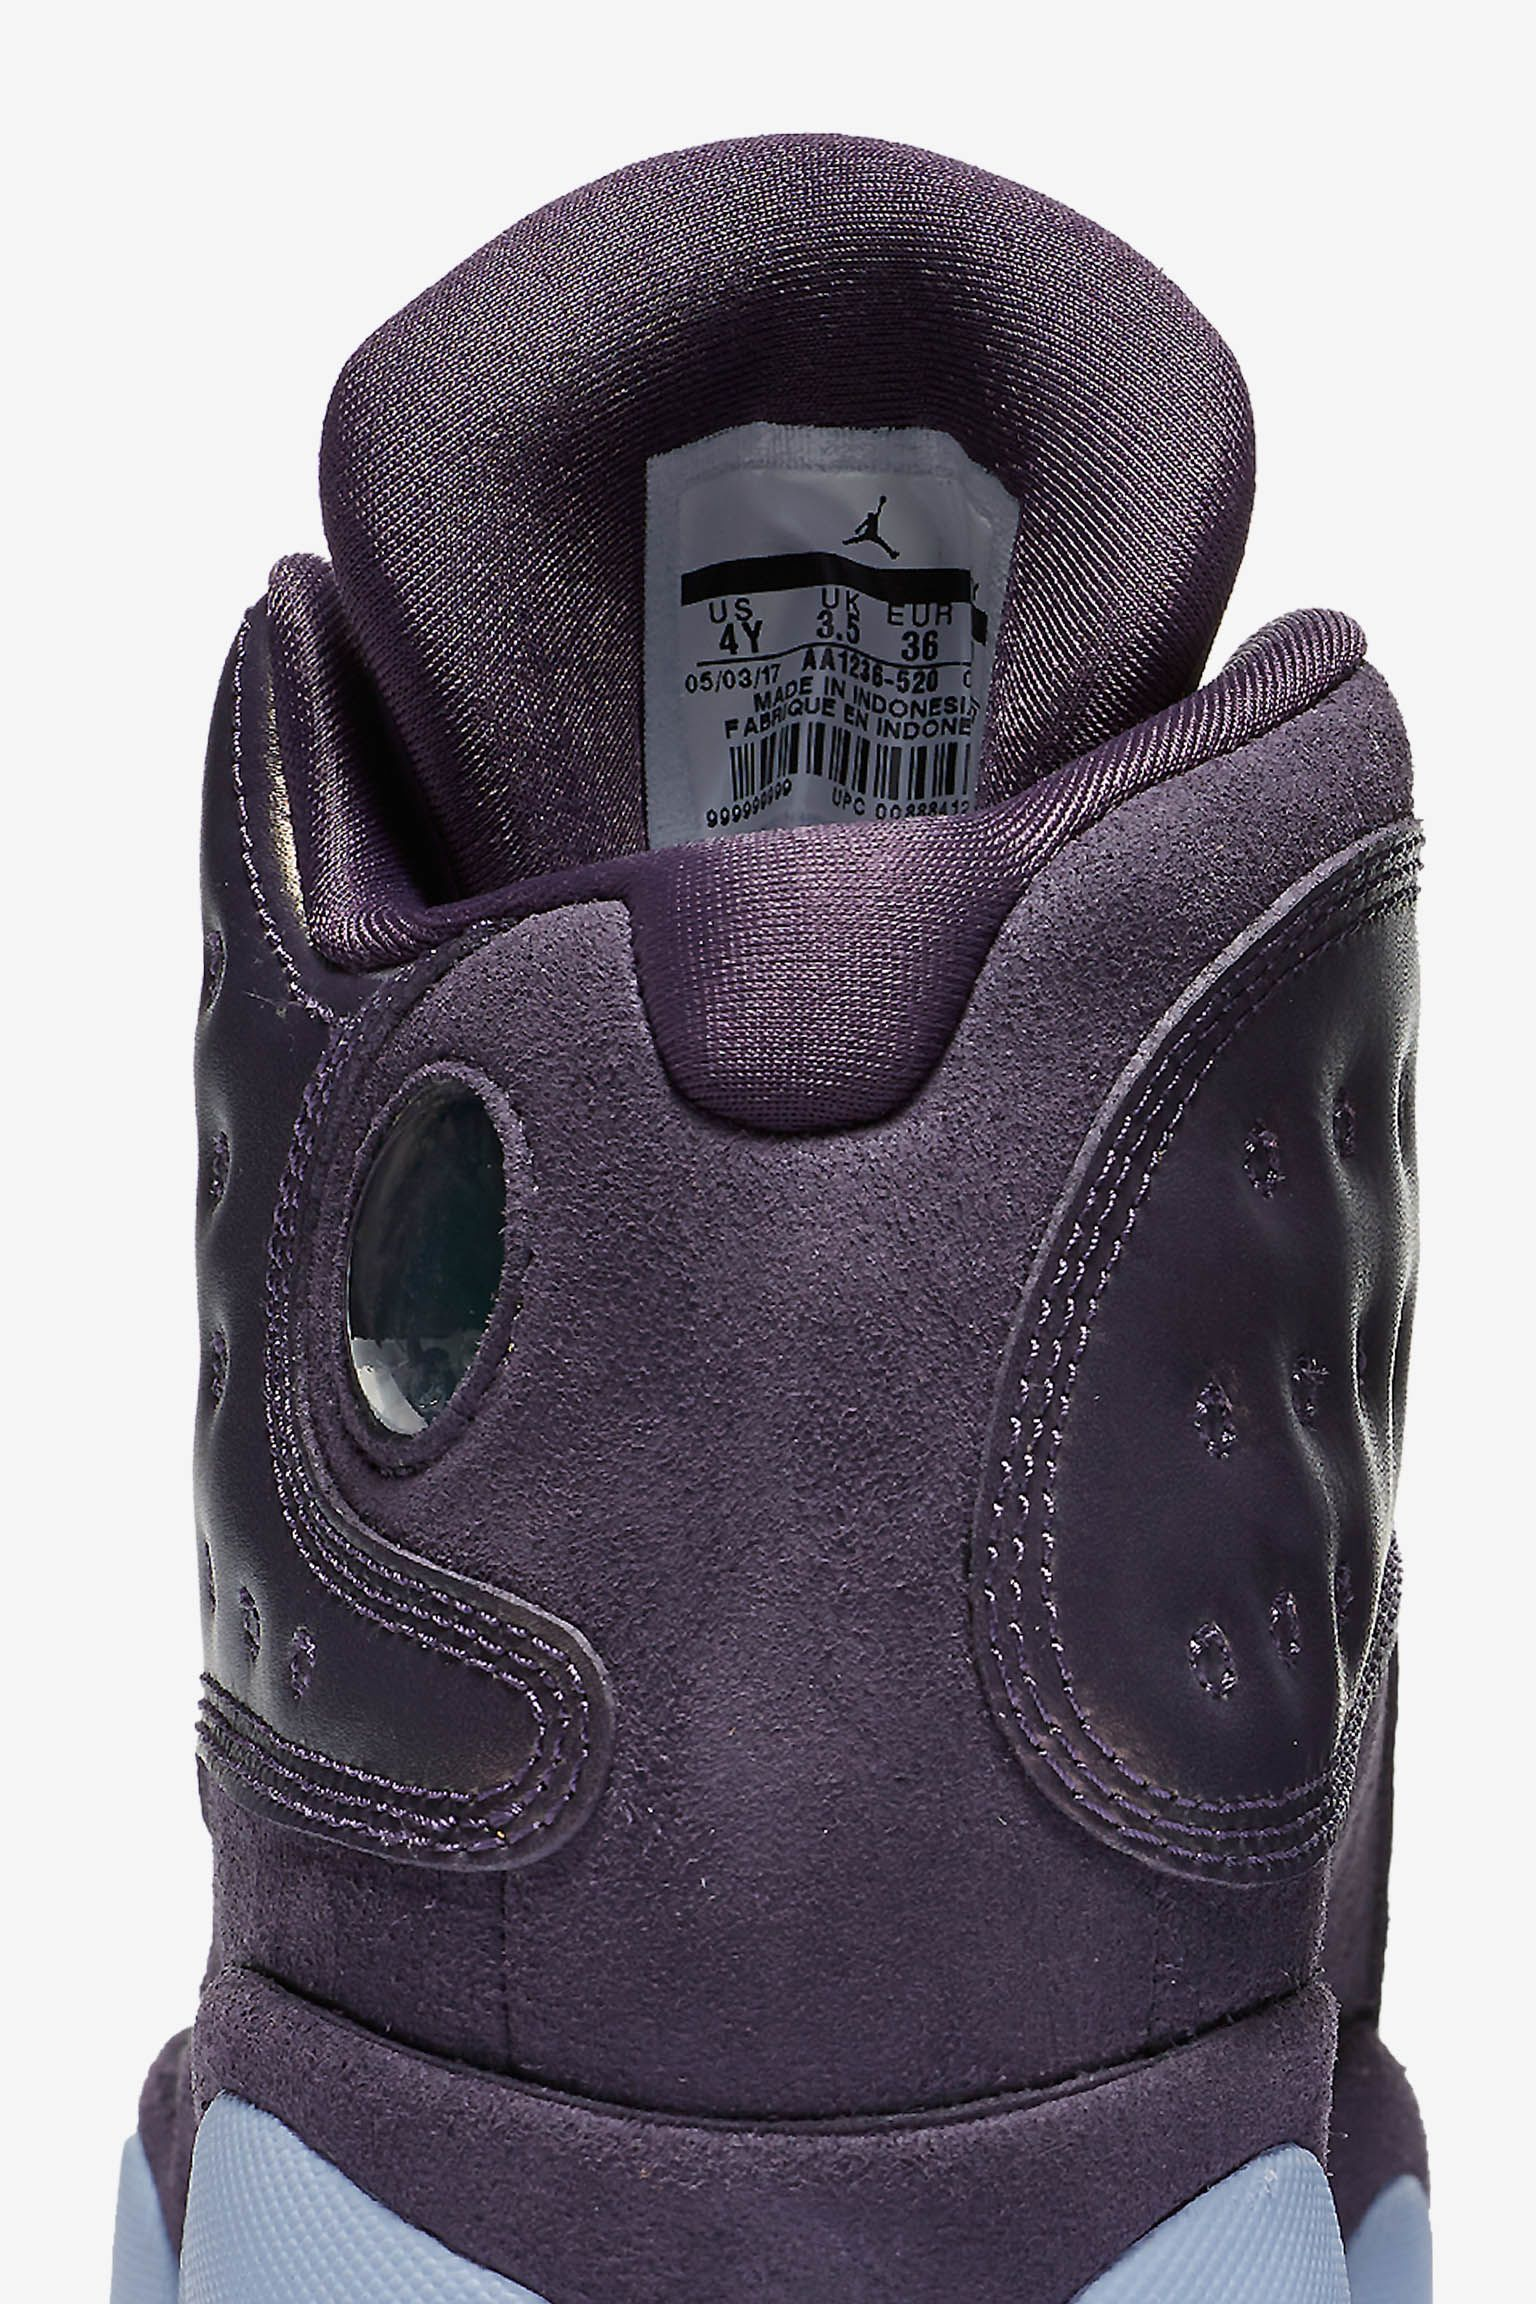 Air Jordan 13 GG Heiress 'Dark Raisin & Hydrogen Blue' Release Date